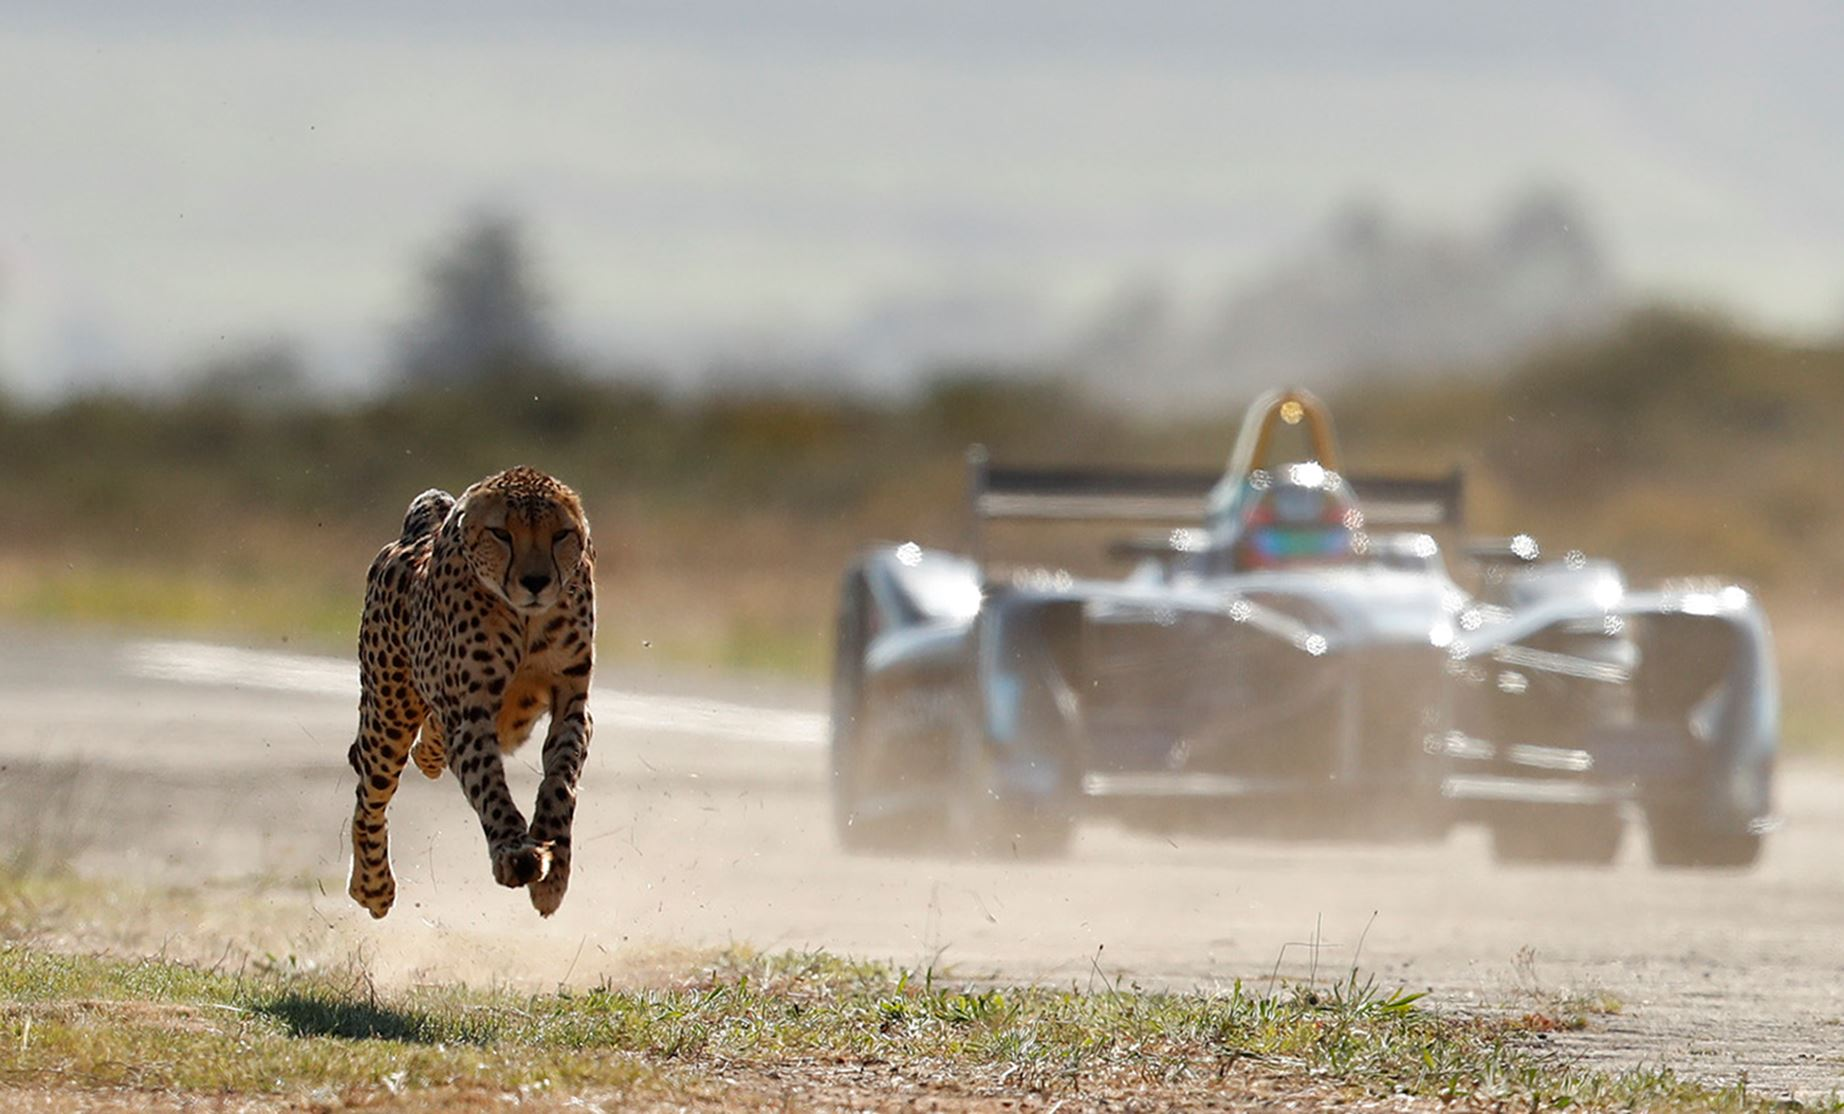 cheetah_leading_car_at_start